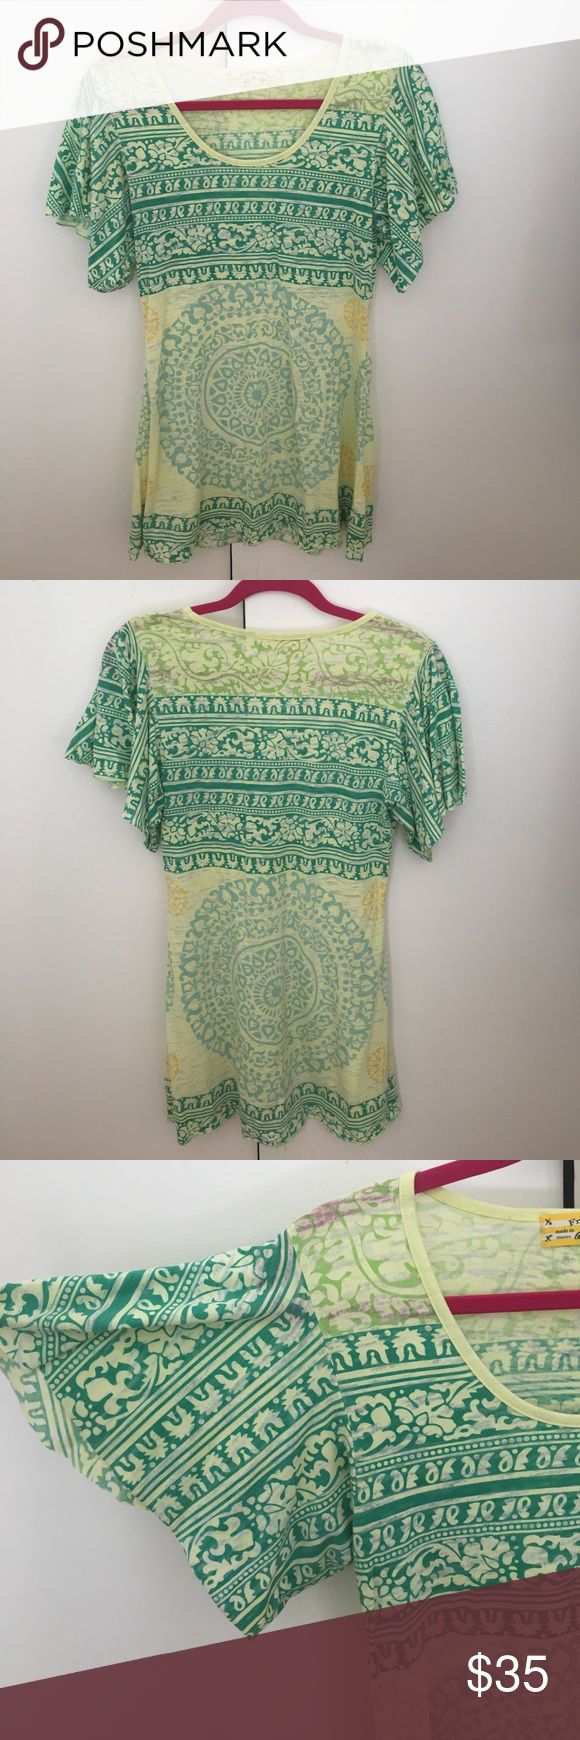 Free People yellow/green dress with flowy sleeves Free People lightweight yellow/green dress with pattern. Flowy sleeves. Perfect for spring/summer. Super flattering on! Free People Dresses Mini